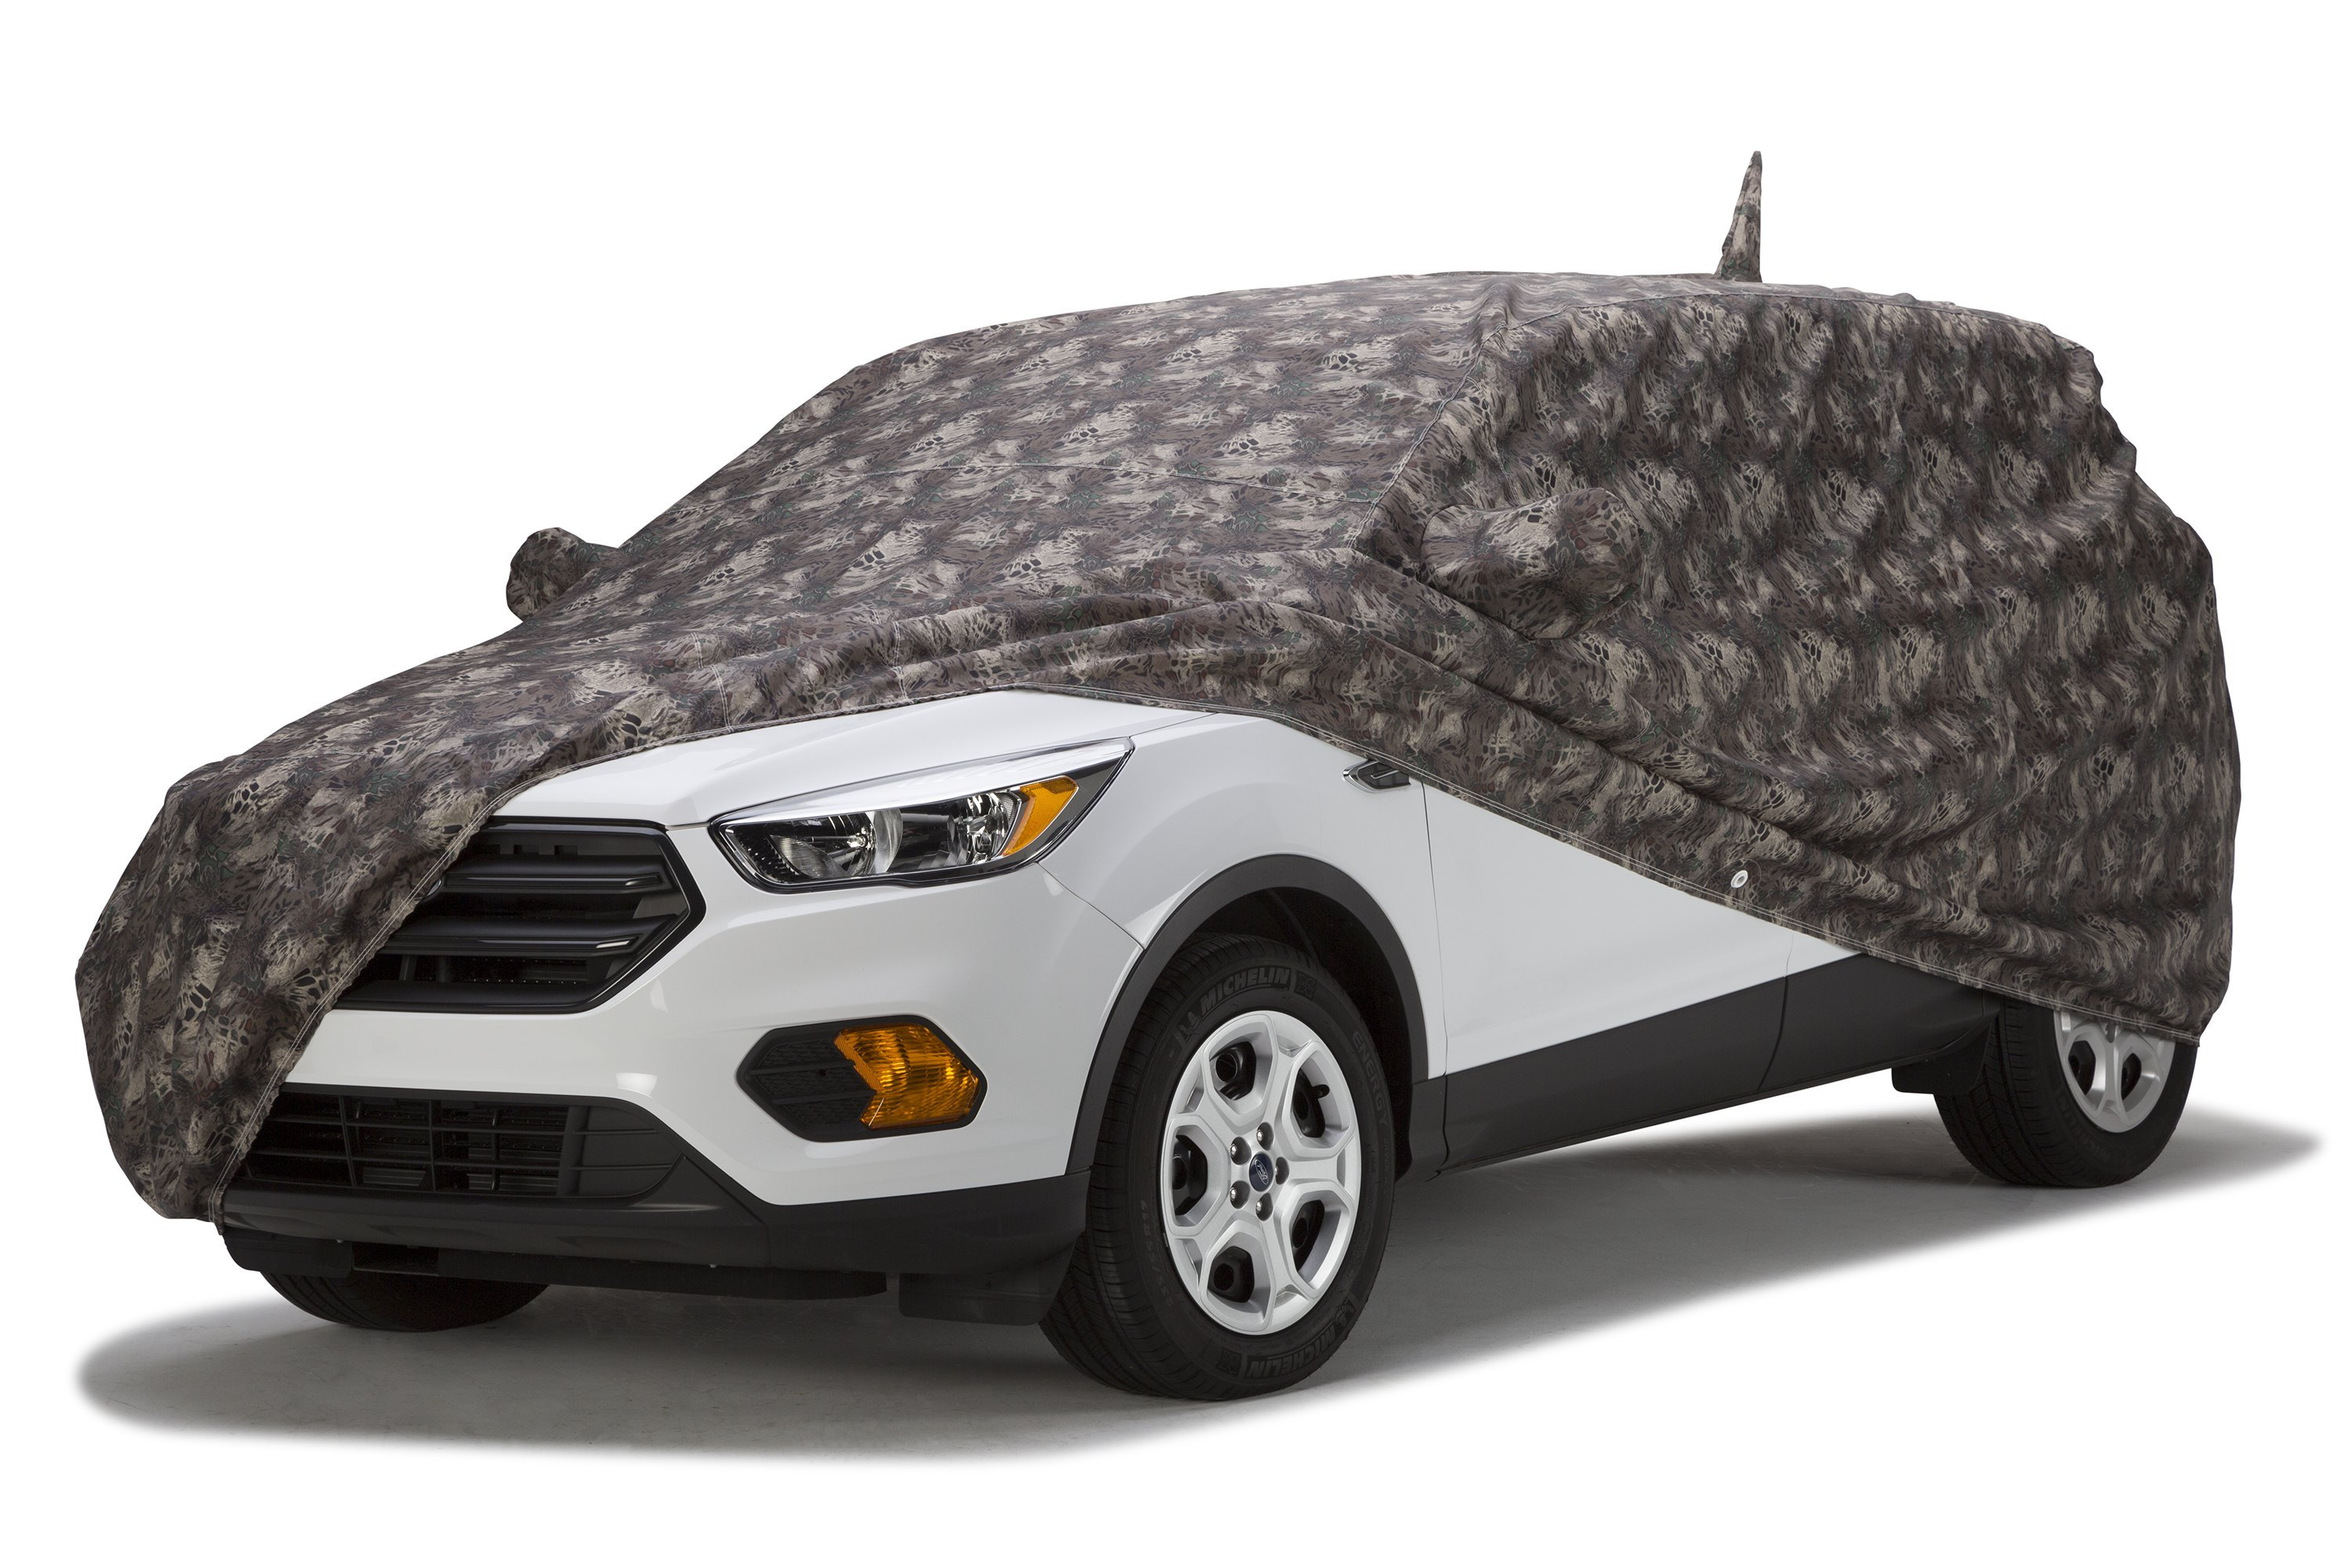 Benefits Of Car Covers - How Can They Covered Your Investment